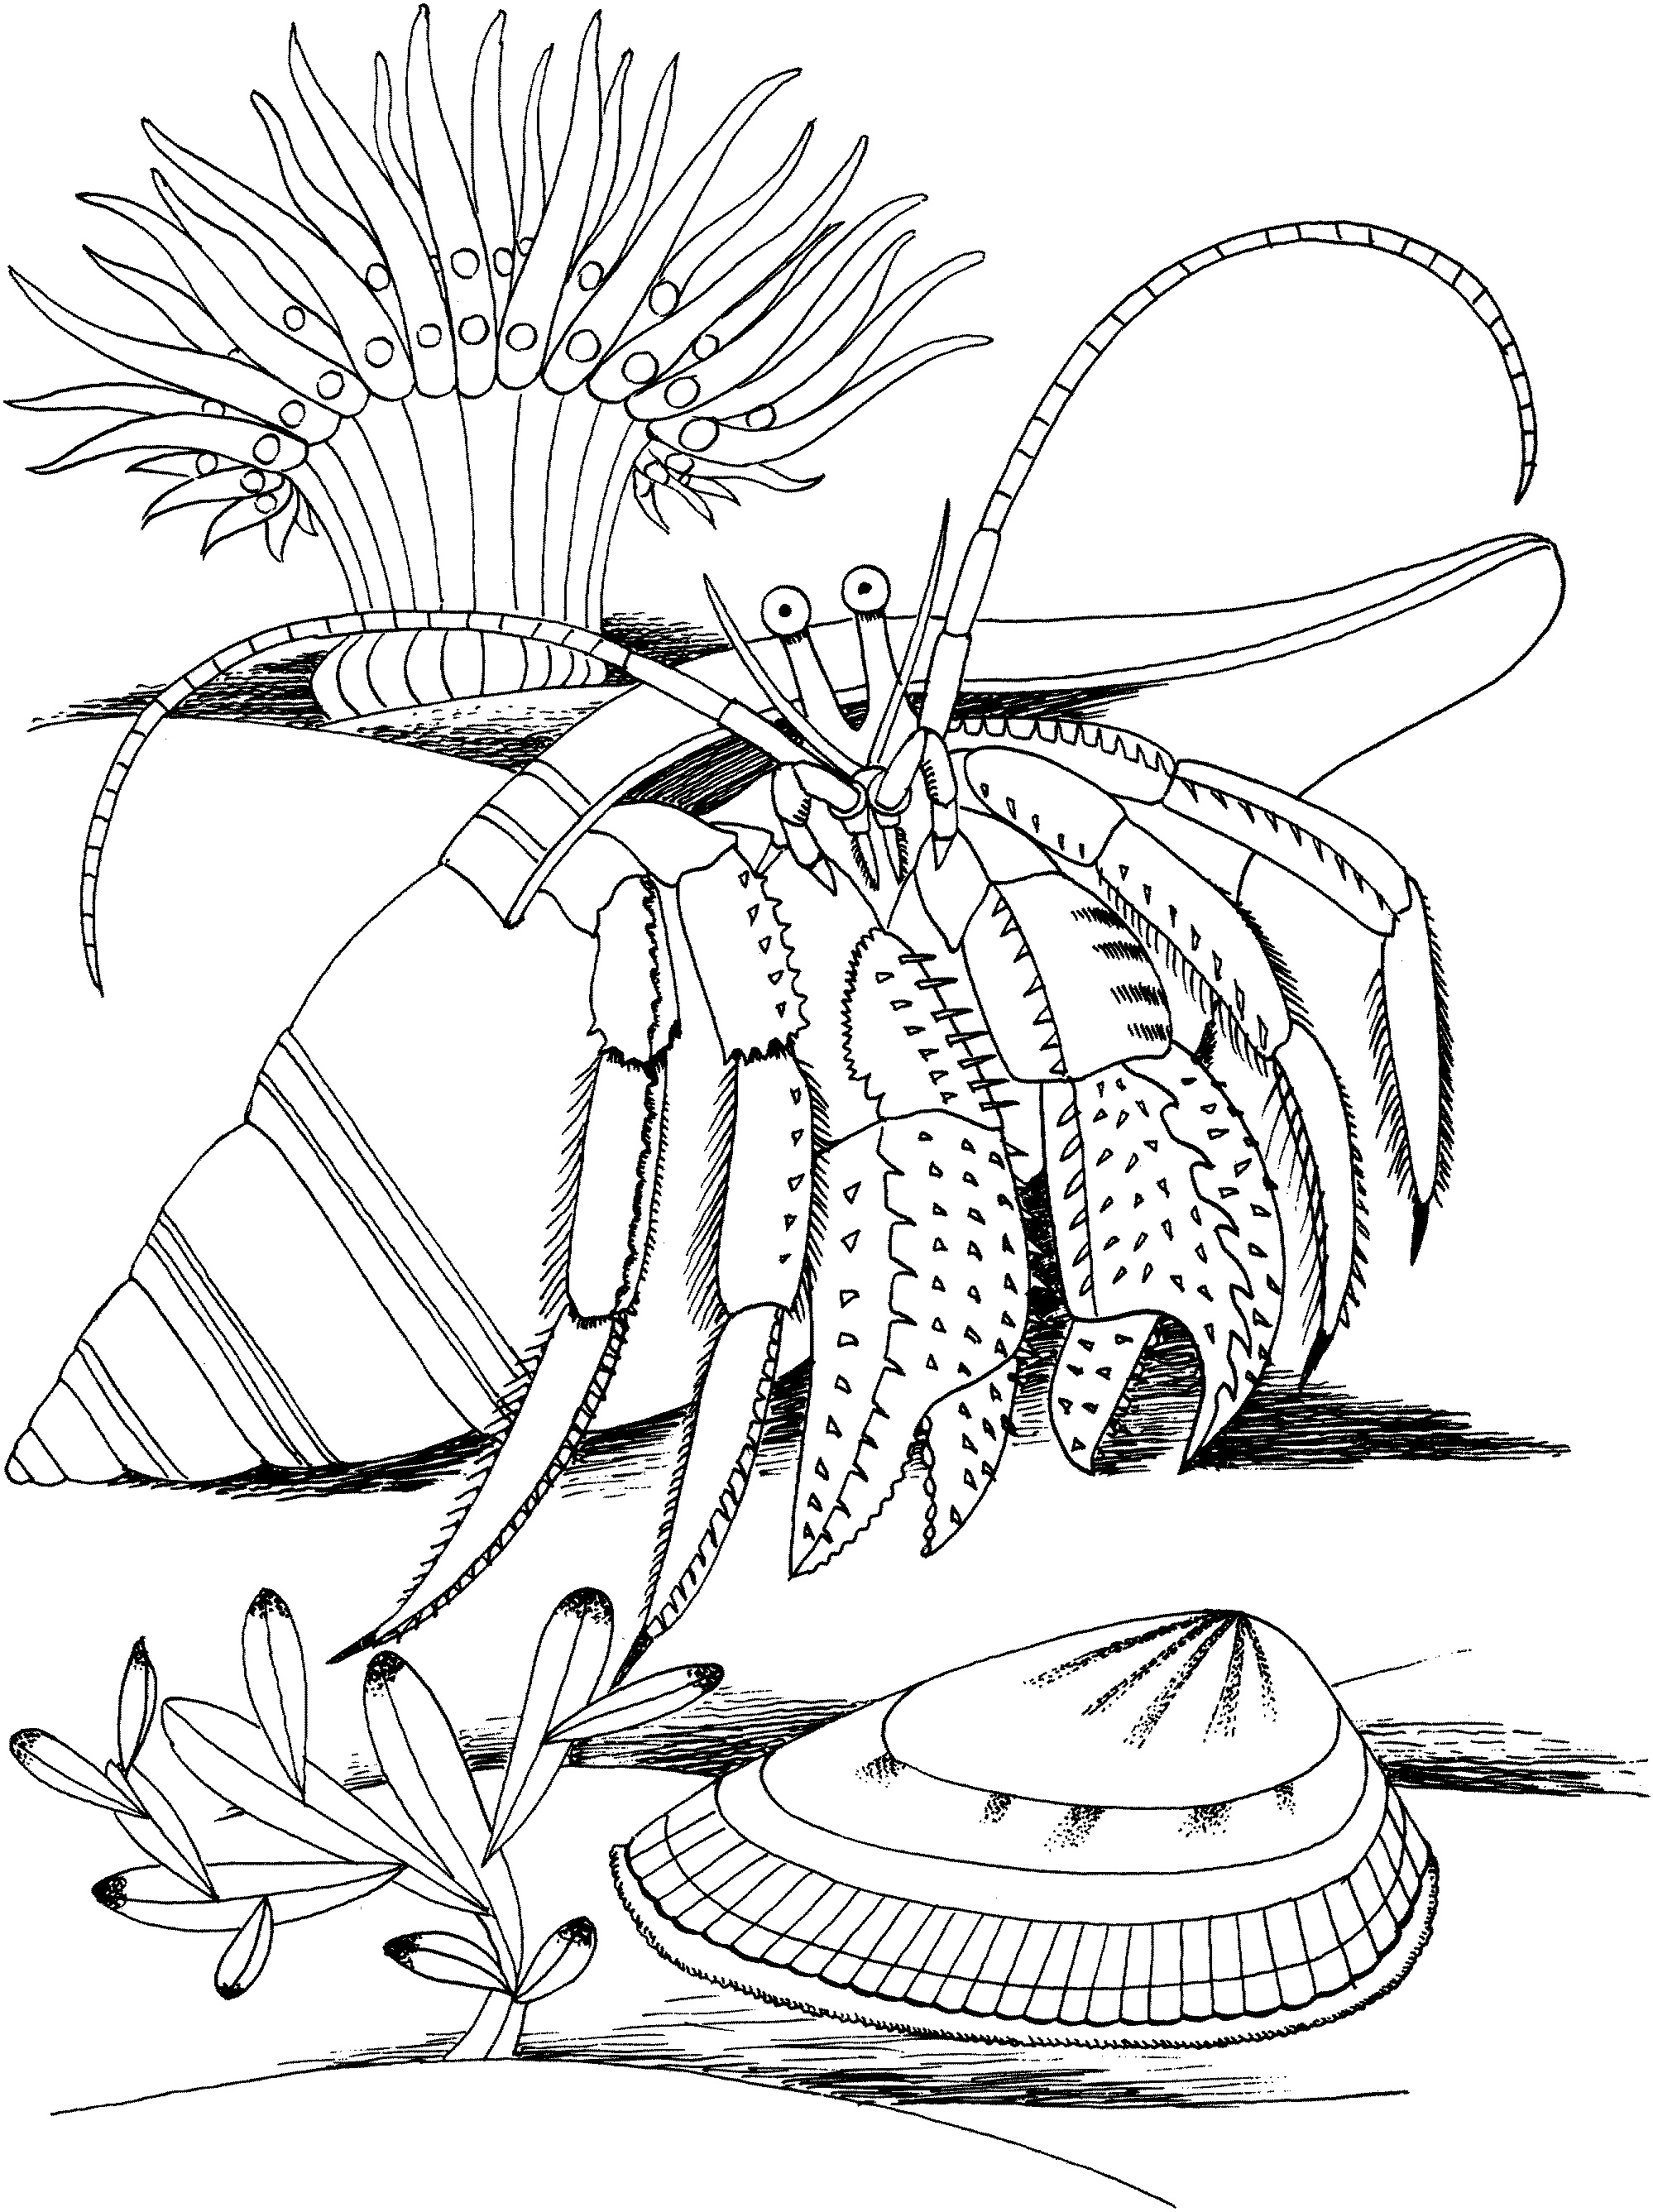 Printable Hermit Crab Coloring Pages Coloring Me - Coloring-pages-crab